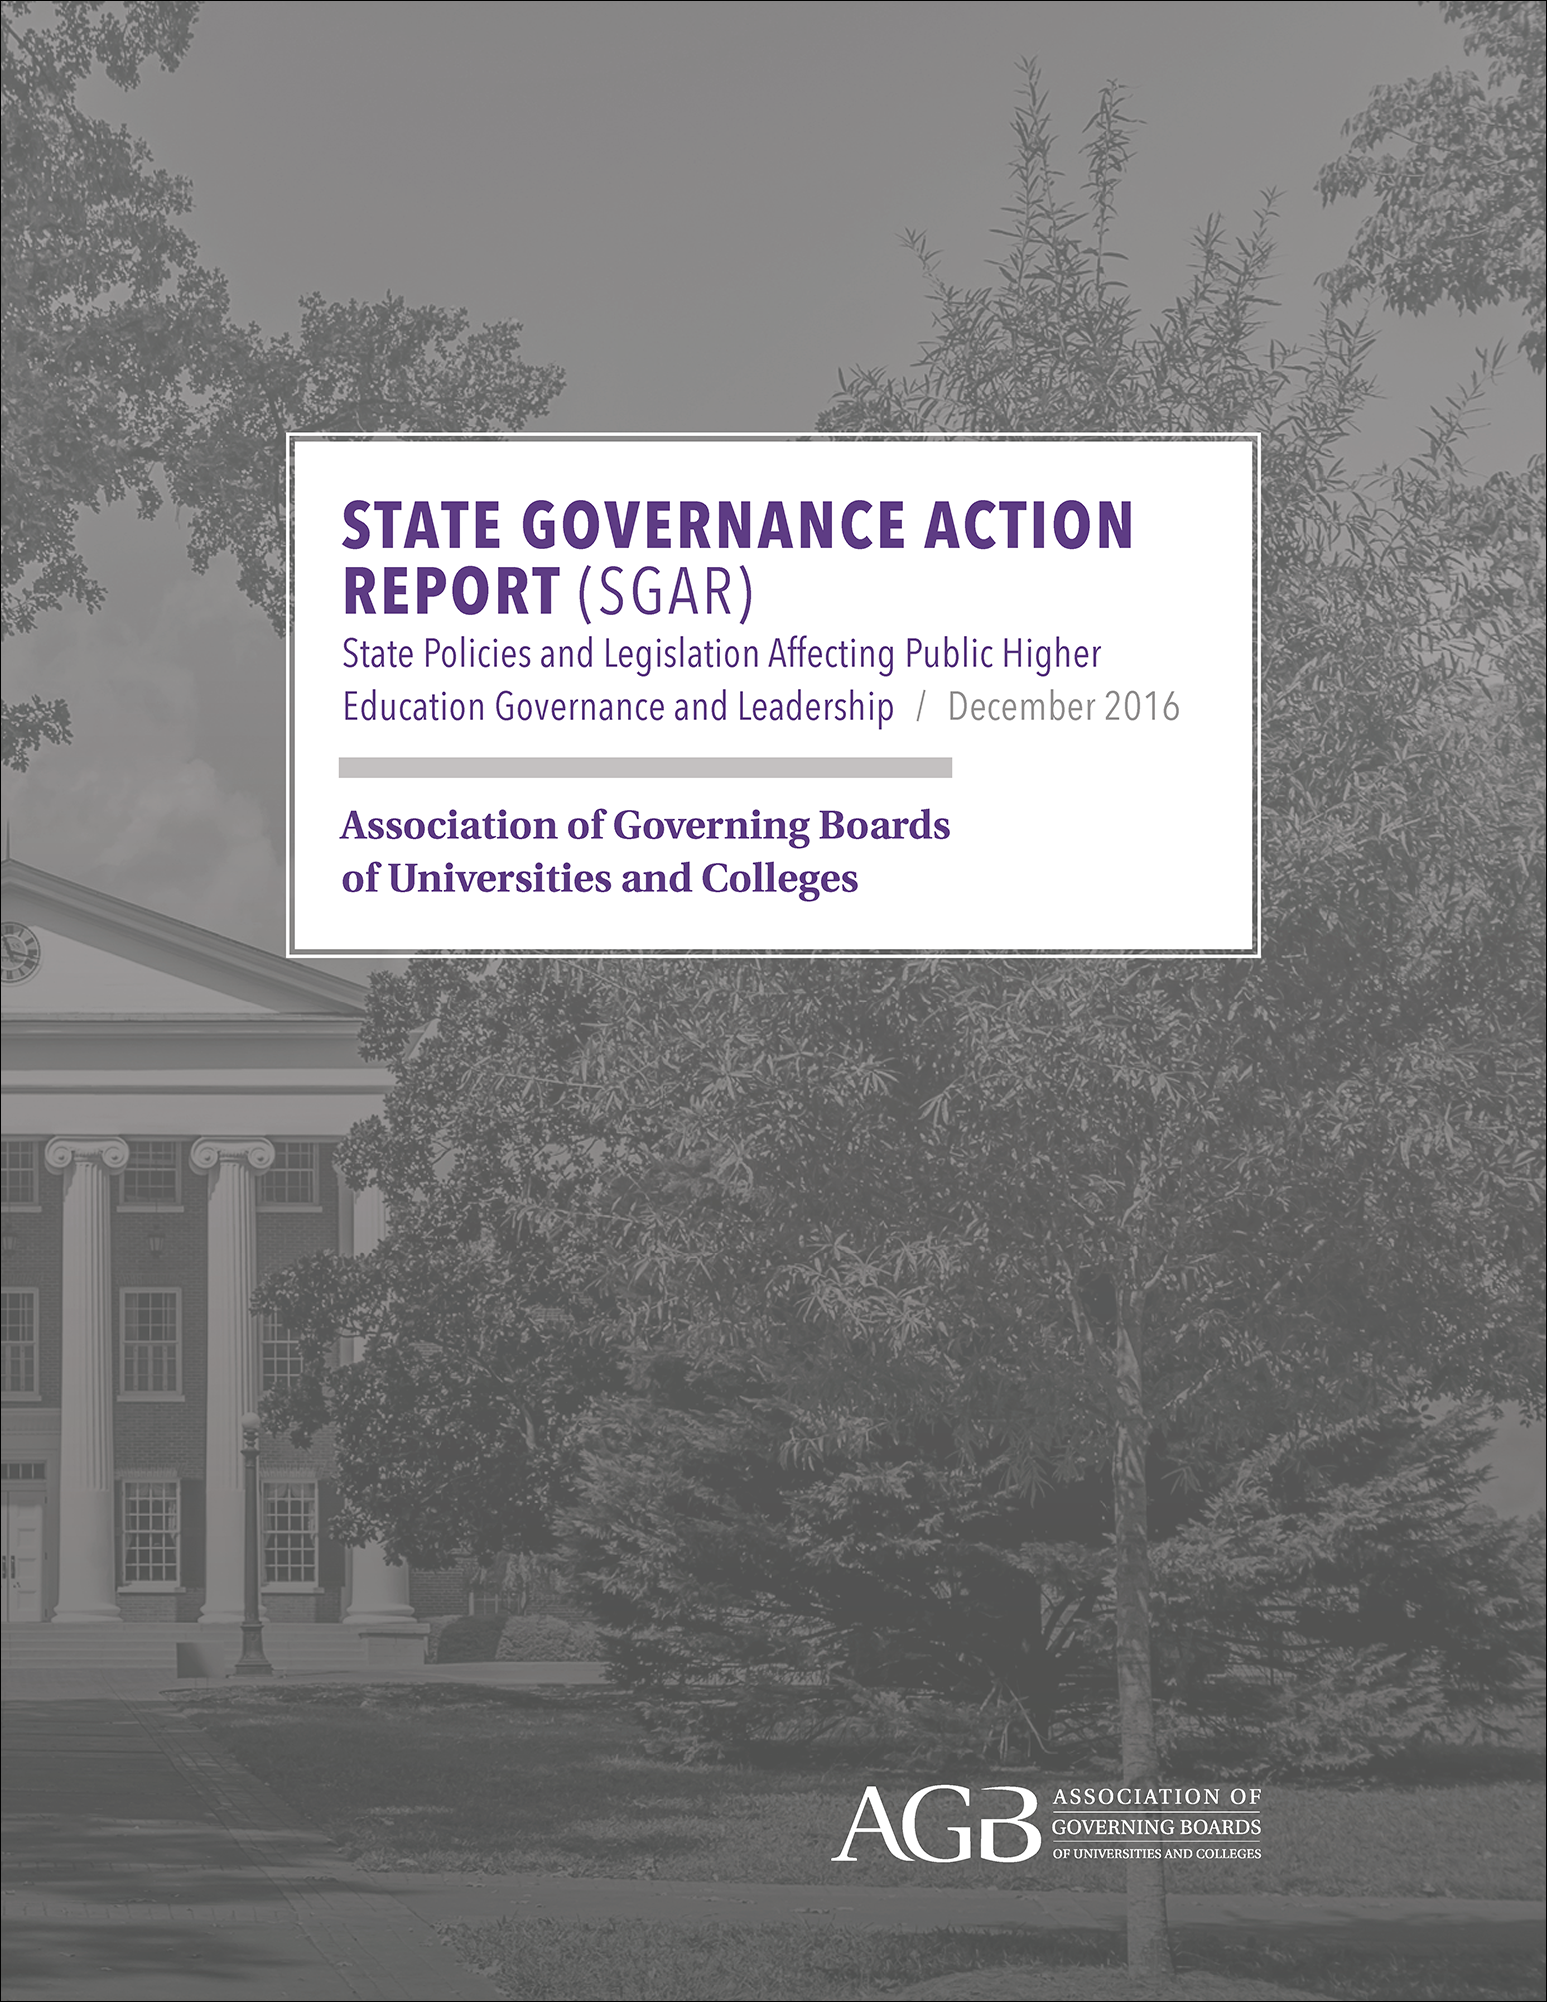 2016 State Governance Action Report